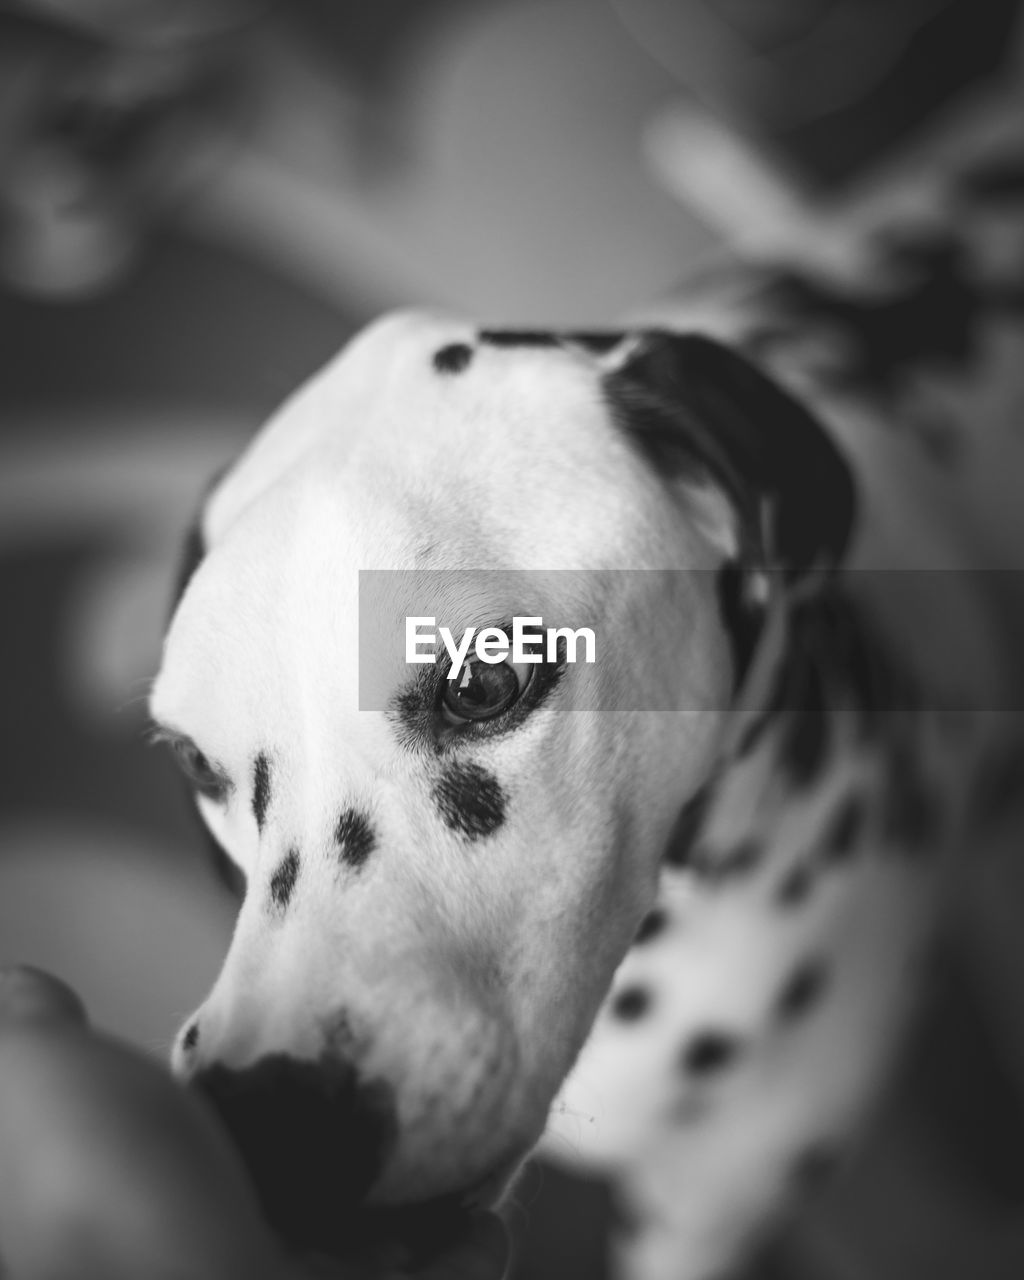 one animal, domestic animals, canine, dog, domestic, pets, animal themes, mammal, animal, vertebrate, close-up, dalmatian dog, indoors, no people, selective focus, looking, looking away, focus on foreground, animal body part, home interior, animal head, animal eye